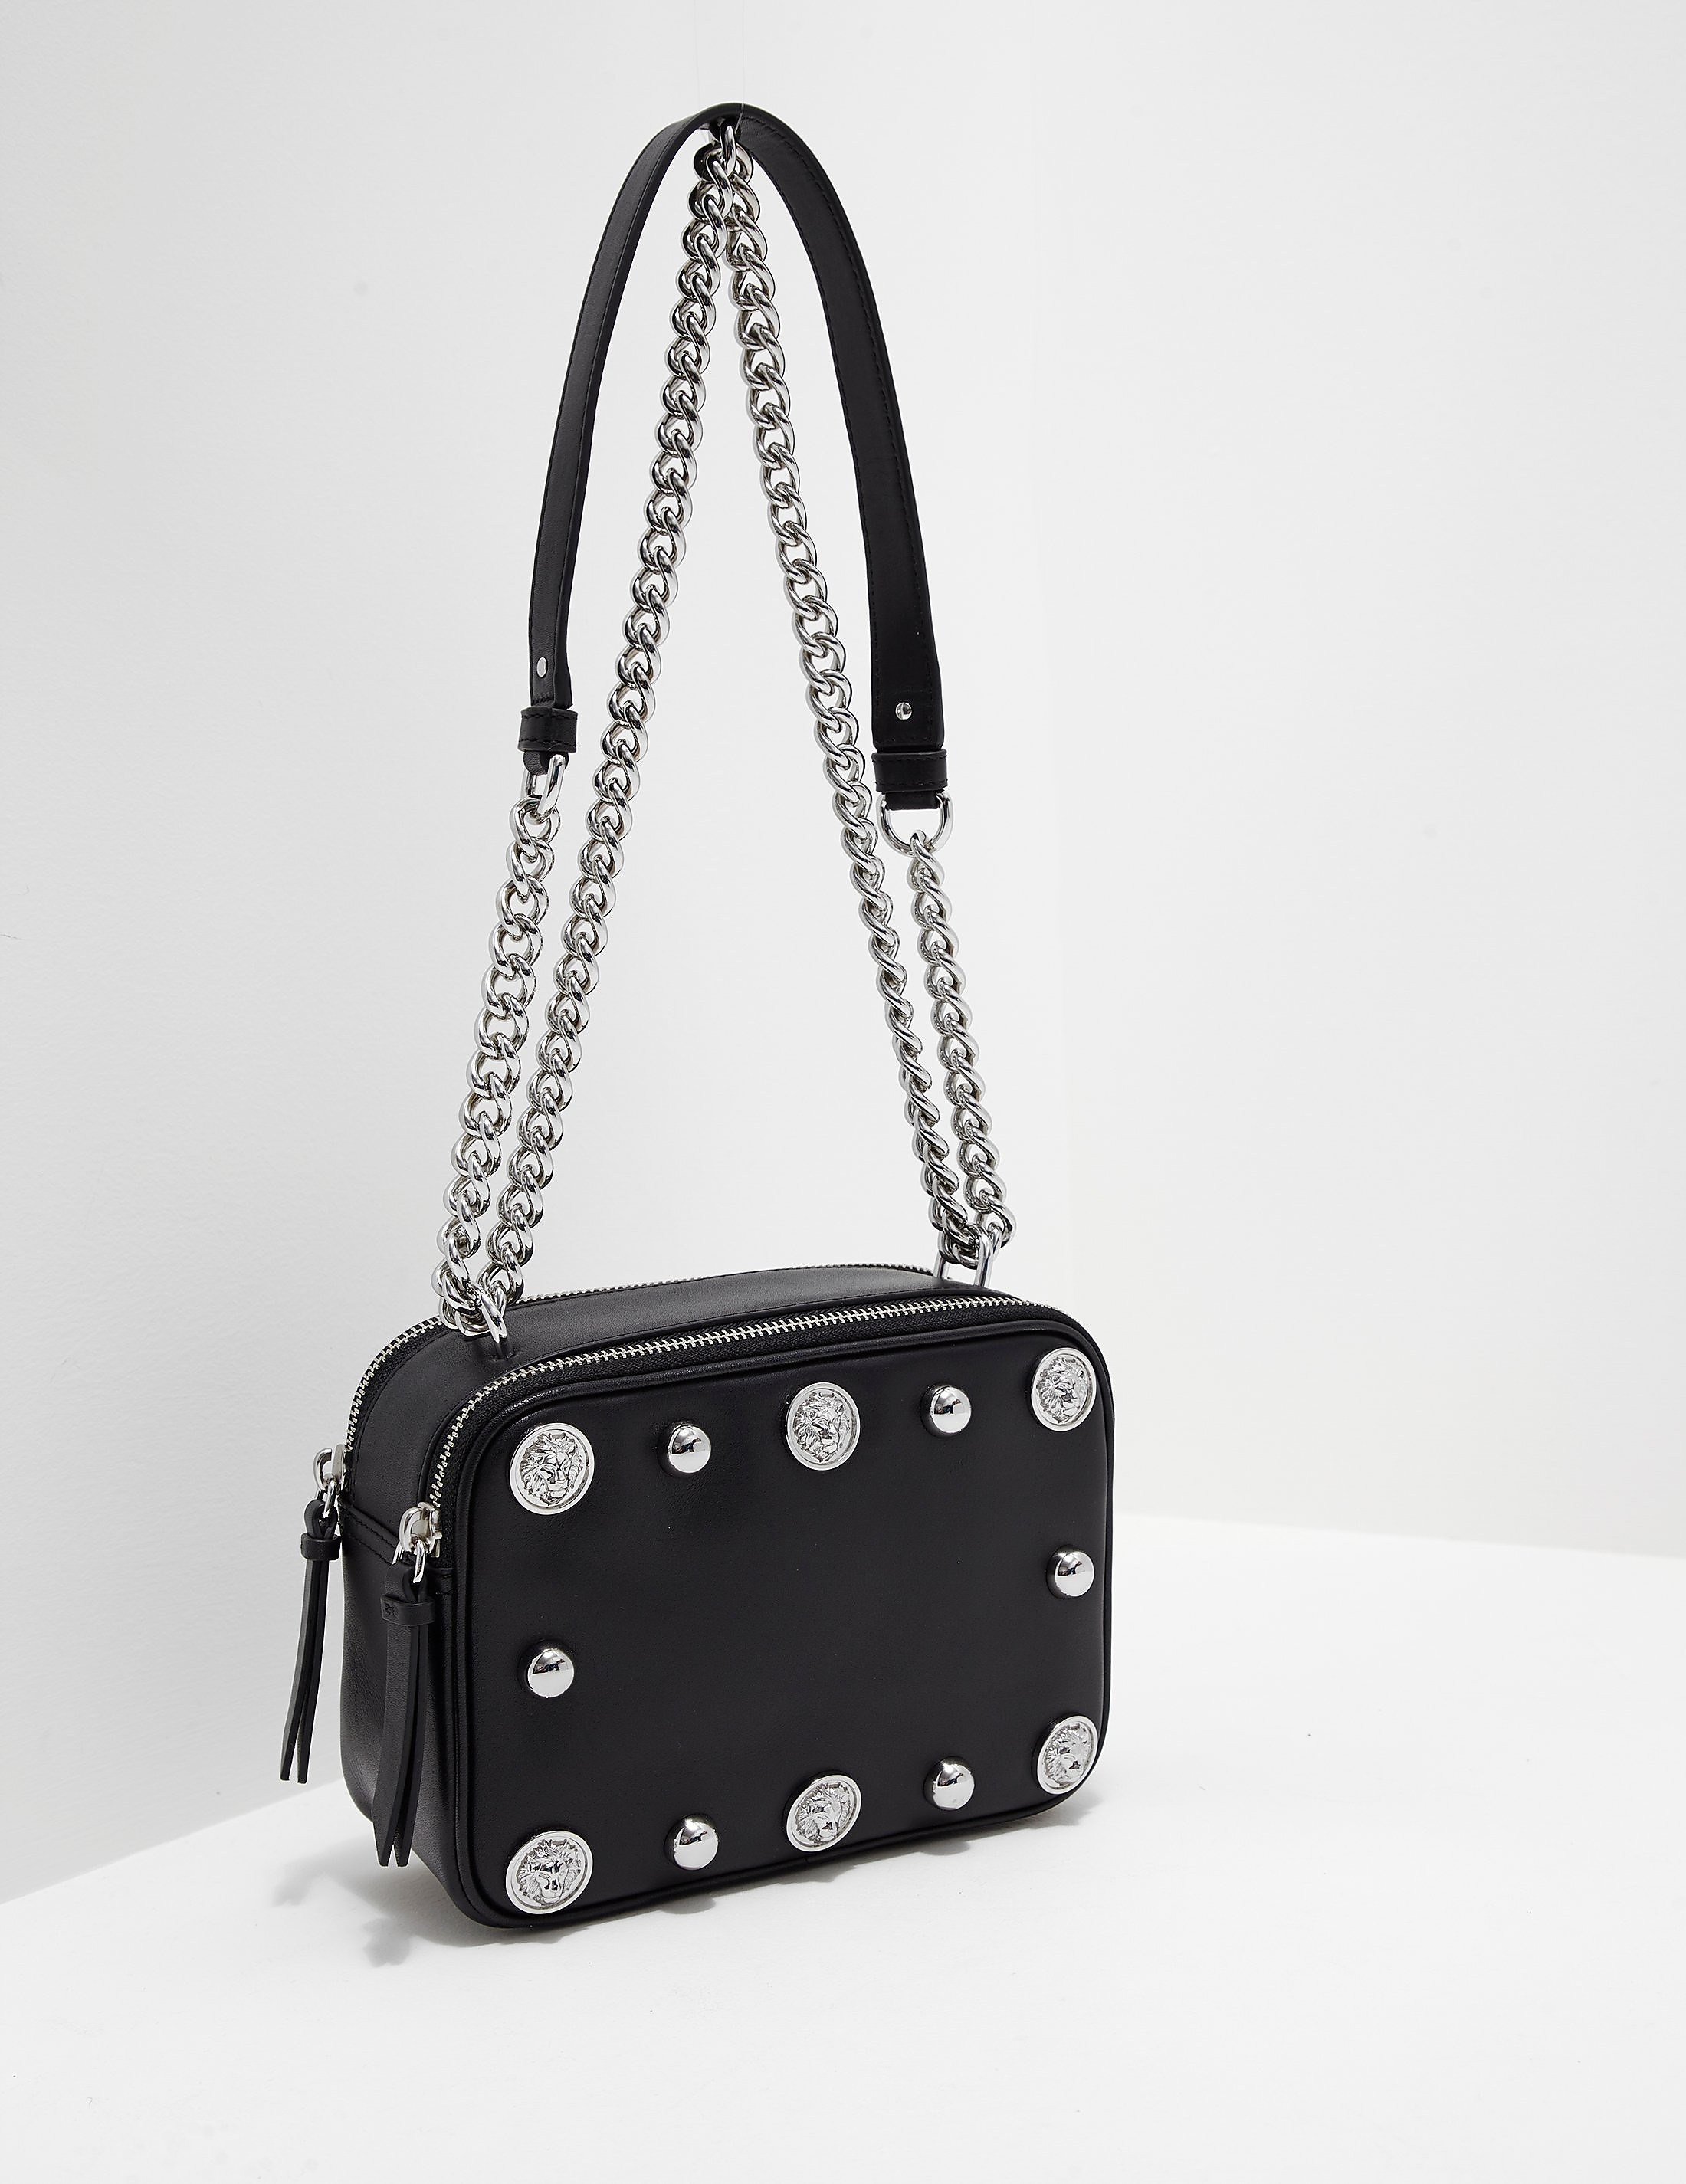 Versus Versace Lion Stud Shoulder Bag